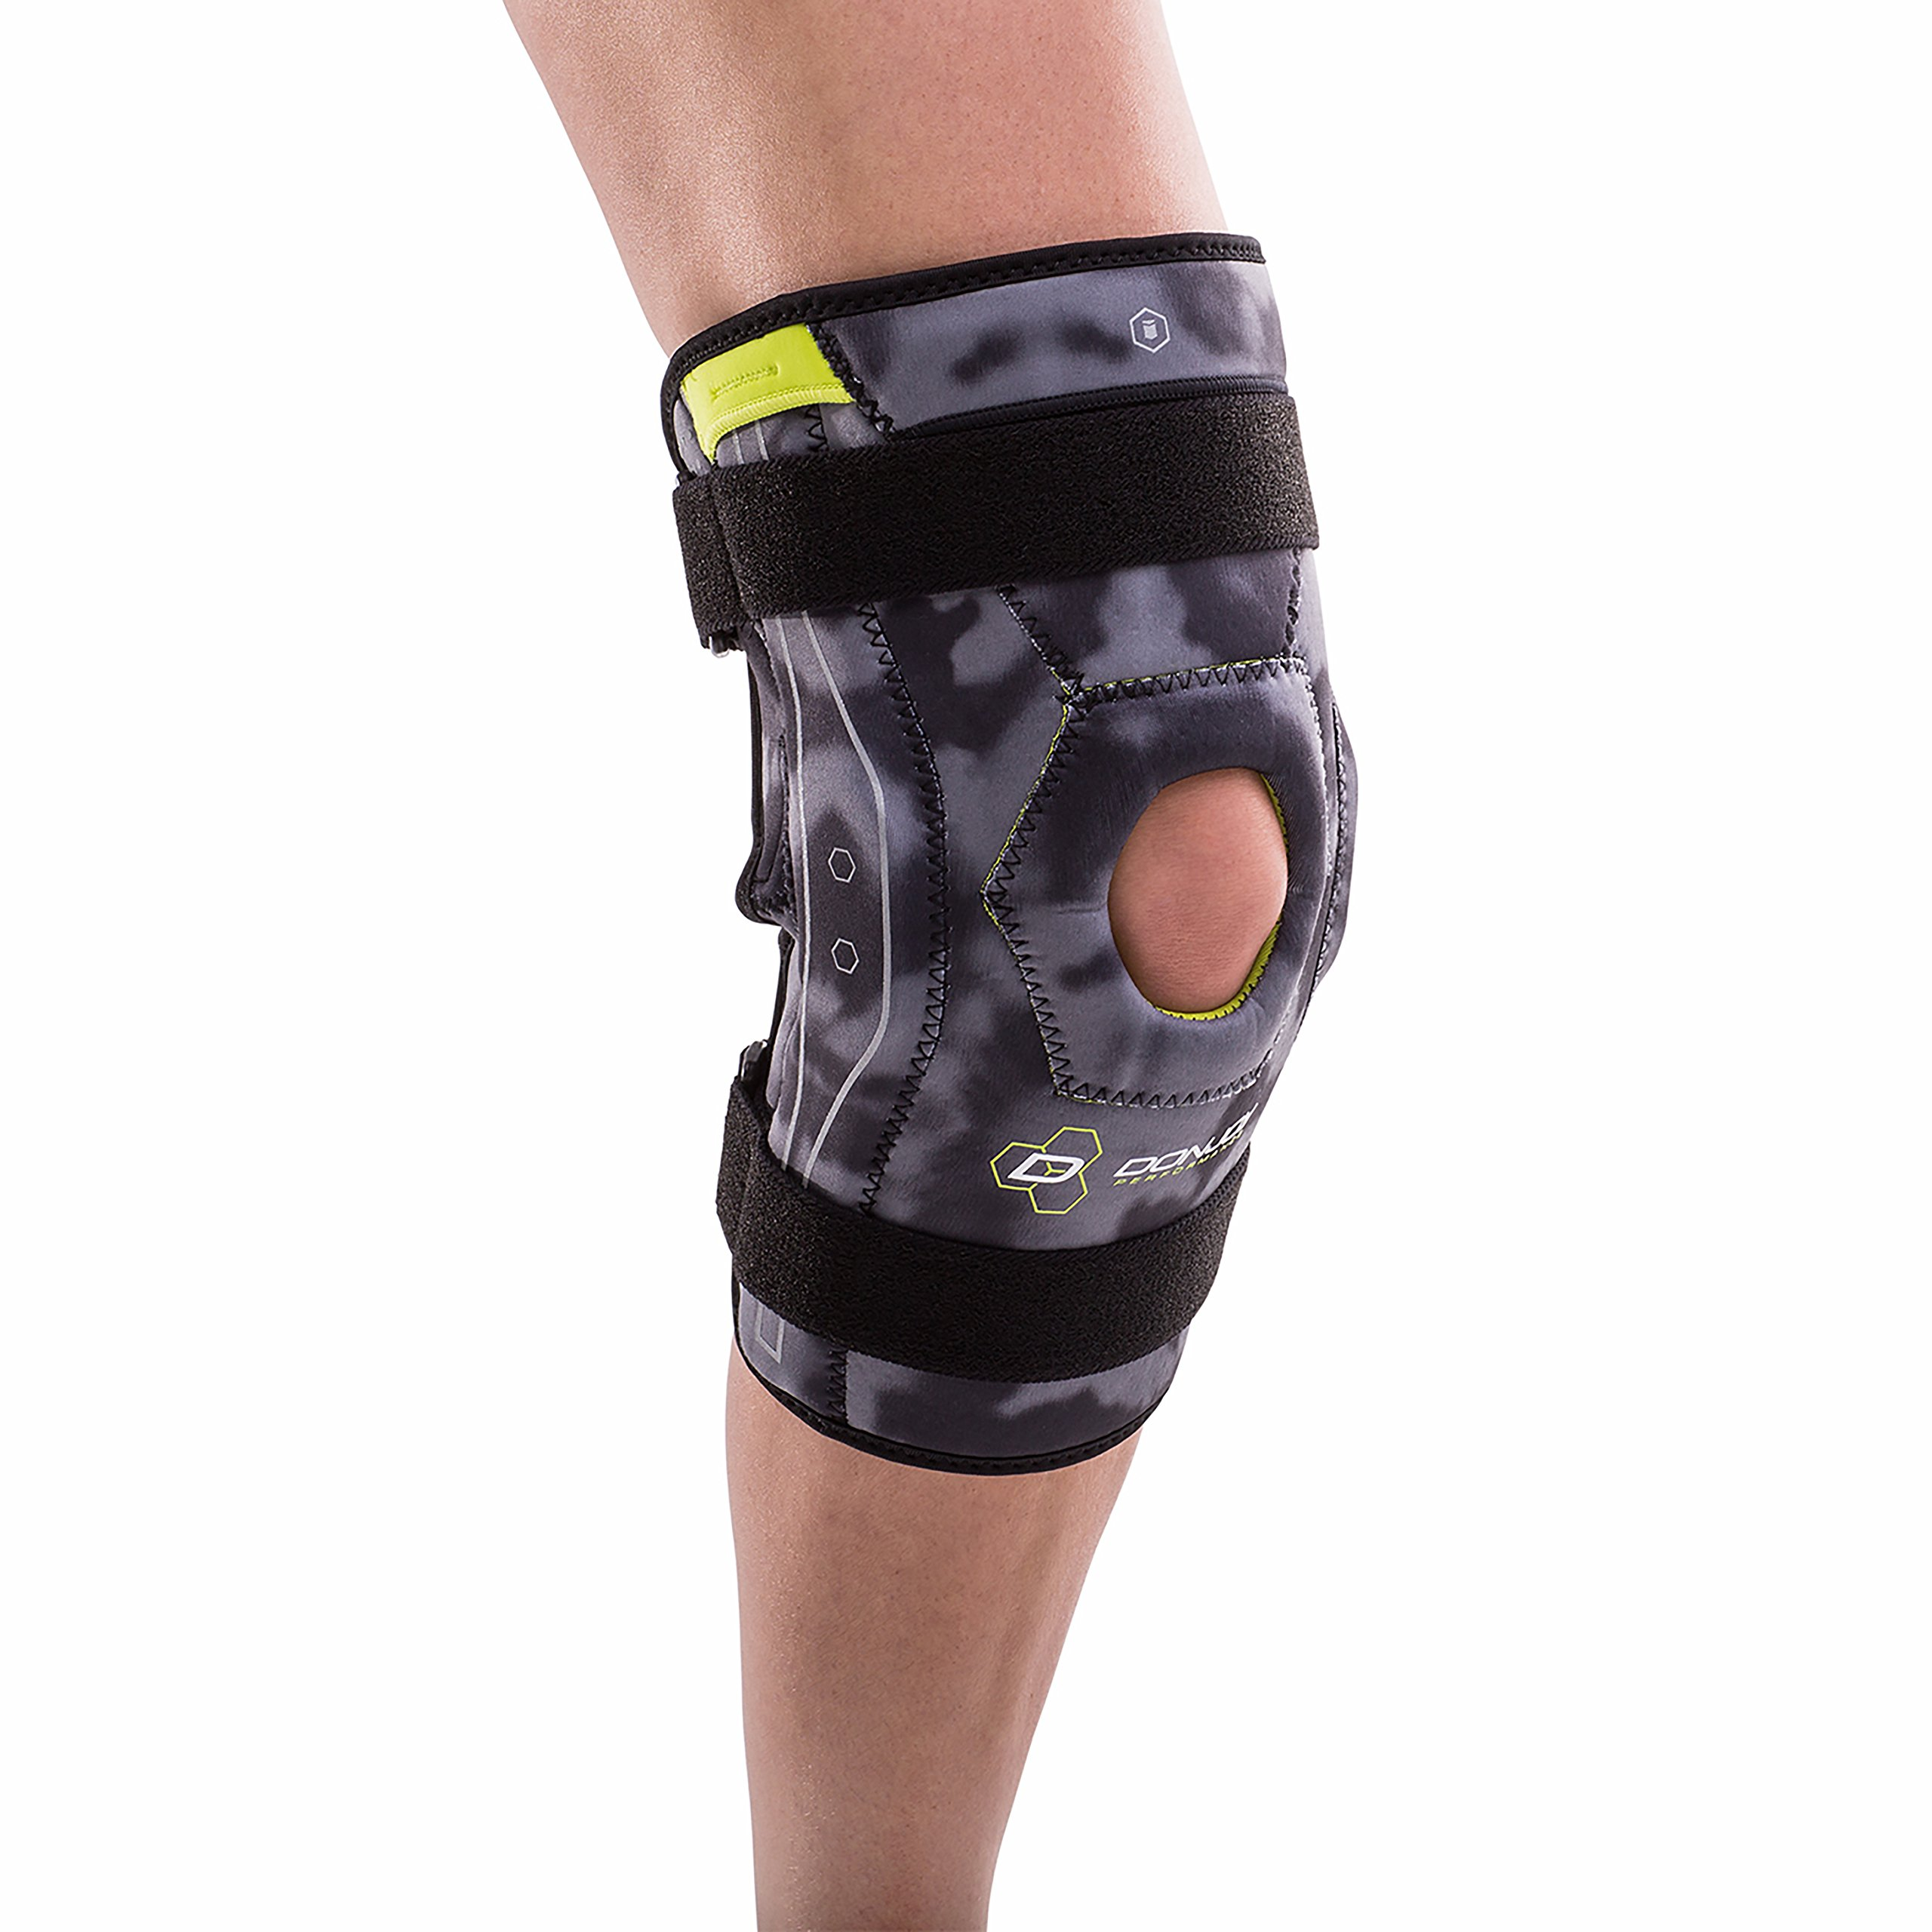 DonJoy Performance Bionic Knee Support Brace: Camo, Medium